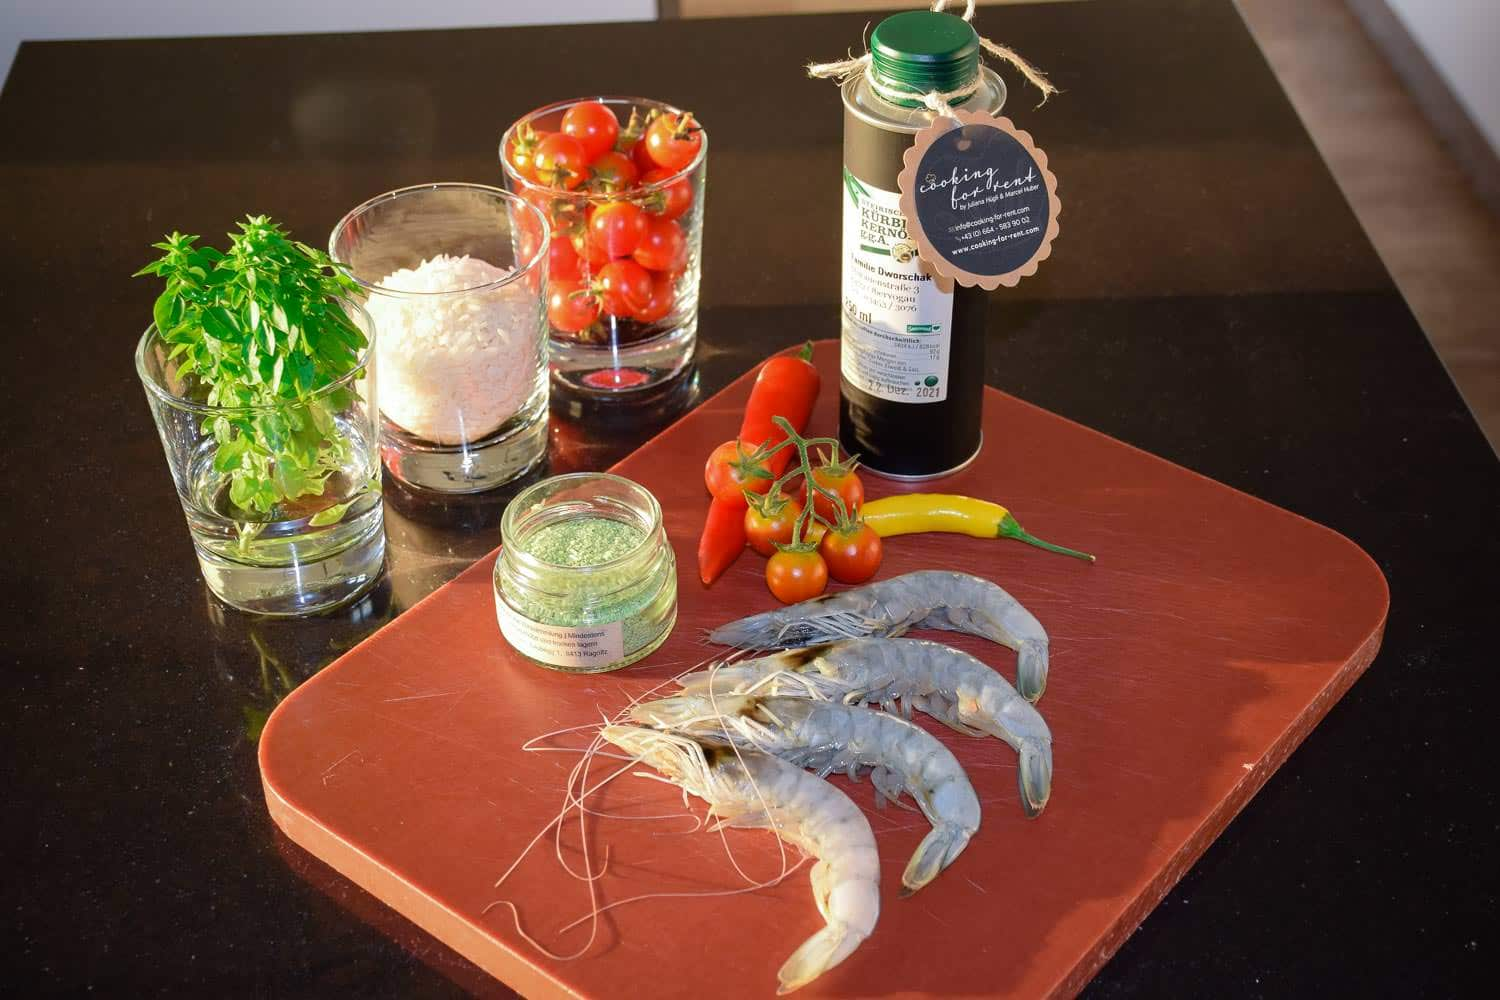 cooking-for-rent-private-cooking-leibnitz-catering-3